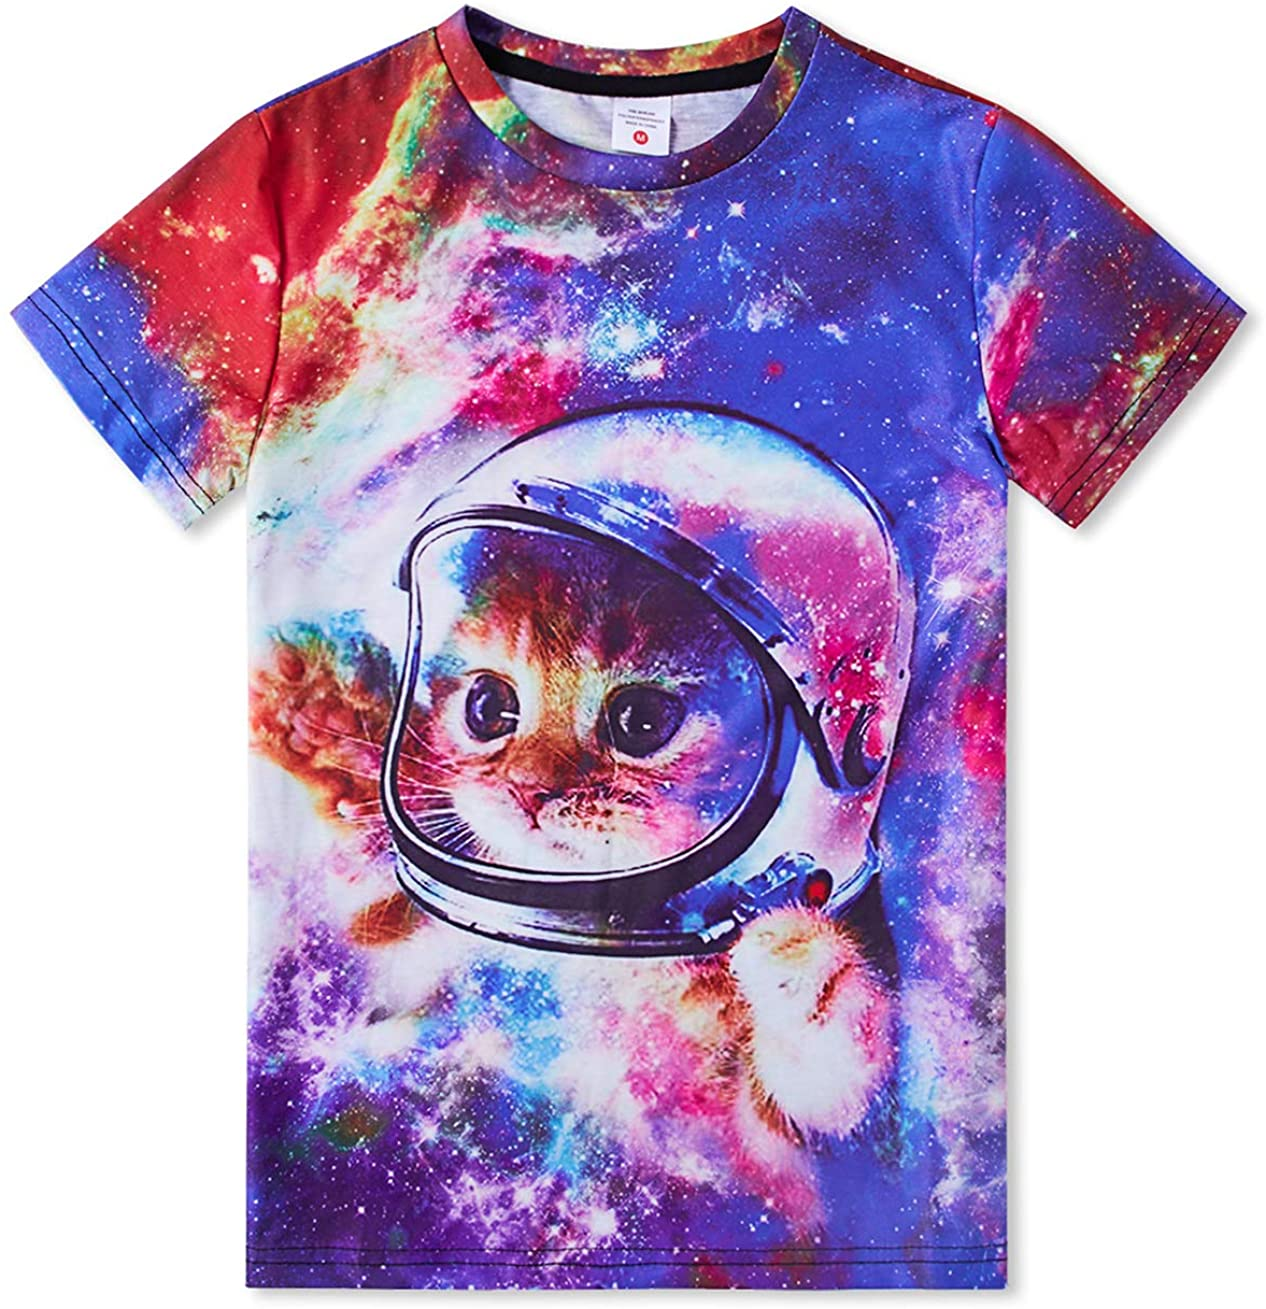 TUONROAD Short Sleeve Graphic Tees Crewneck T-Shirt Summer Shirt Tops Outfits for 6-14 Years Girls Boys